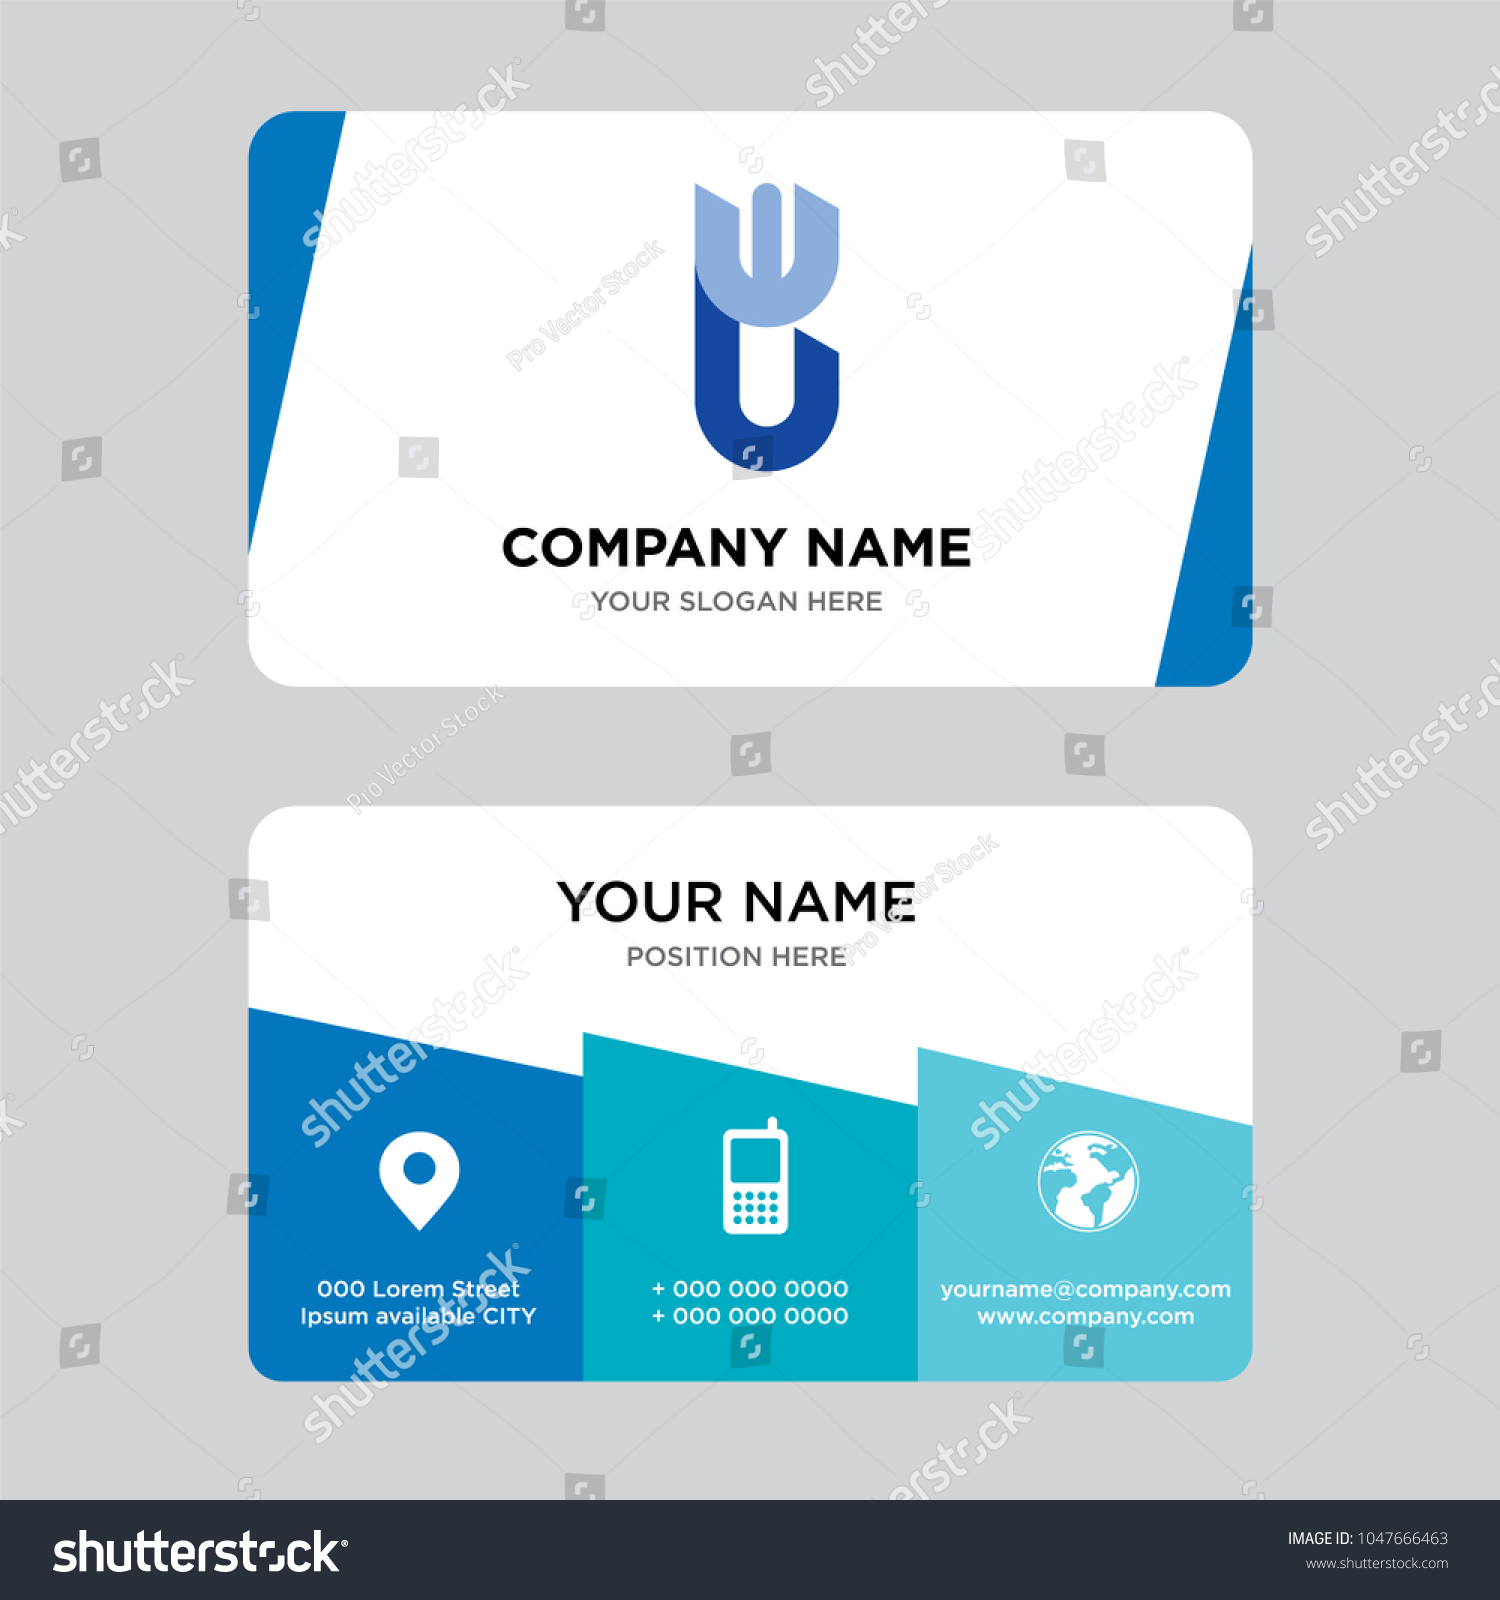 WU UW Business Card Design Template Stock Vector (2018) 1047666463 ...